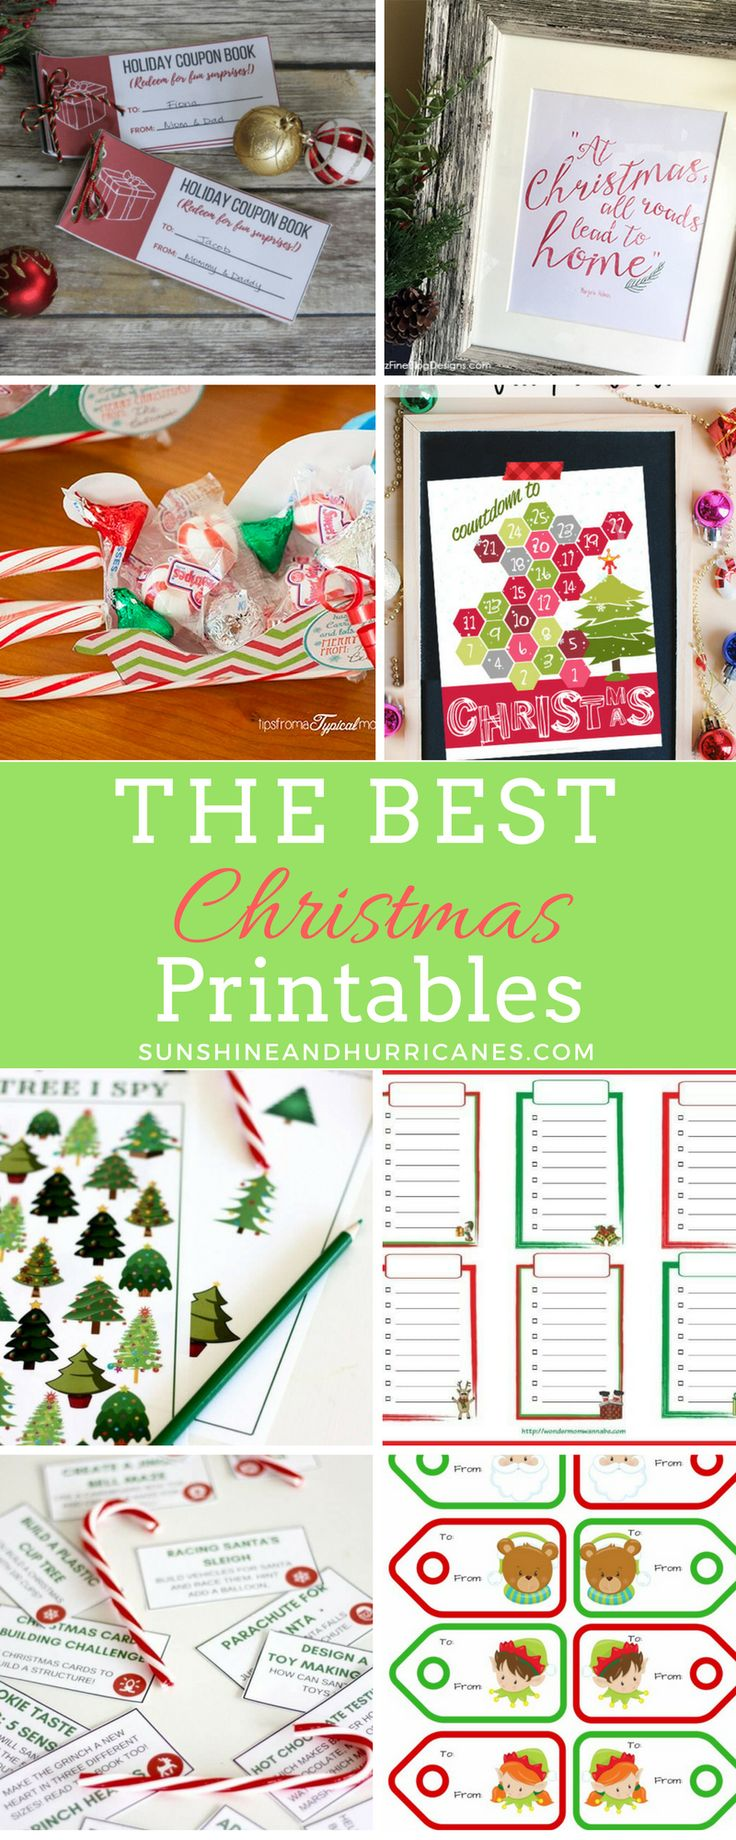 Christmas Printables of all kind are a perfect for adding festive holiday decor to your home, personalizing Christmas gift giving or finding fun holiday activities for the kiddos. via @sunandhurricane